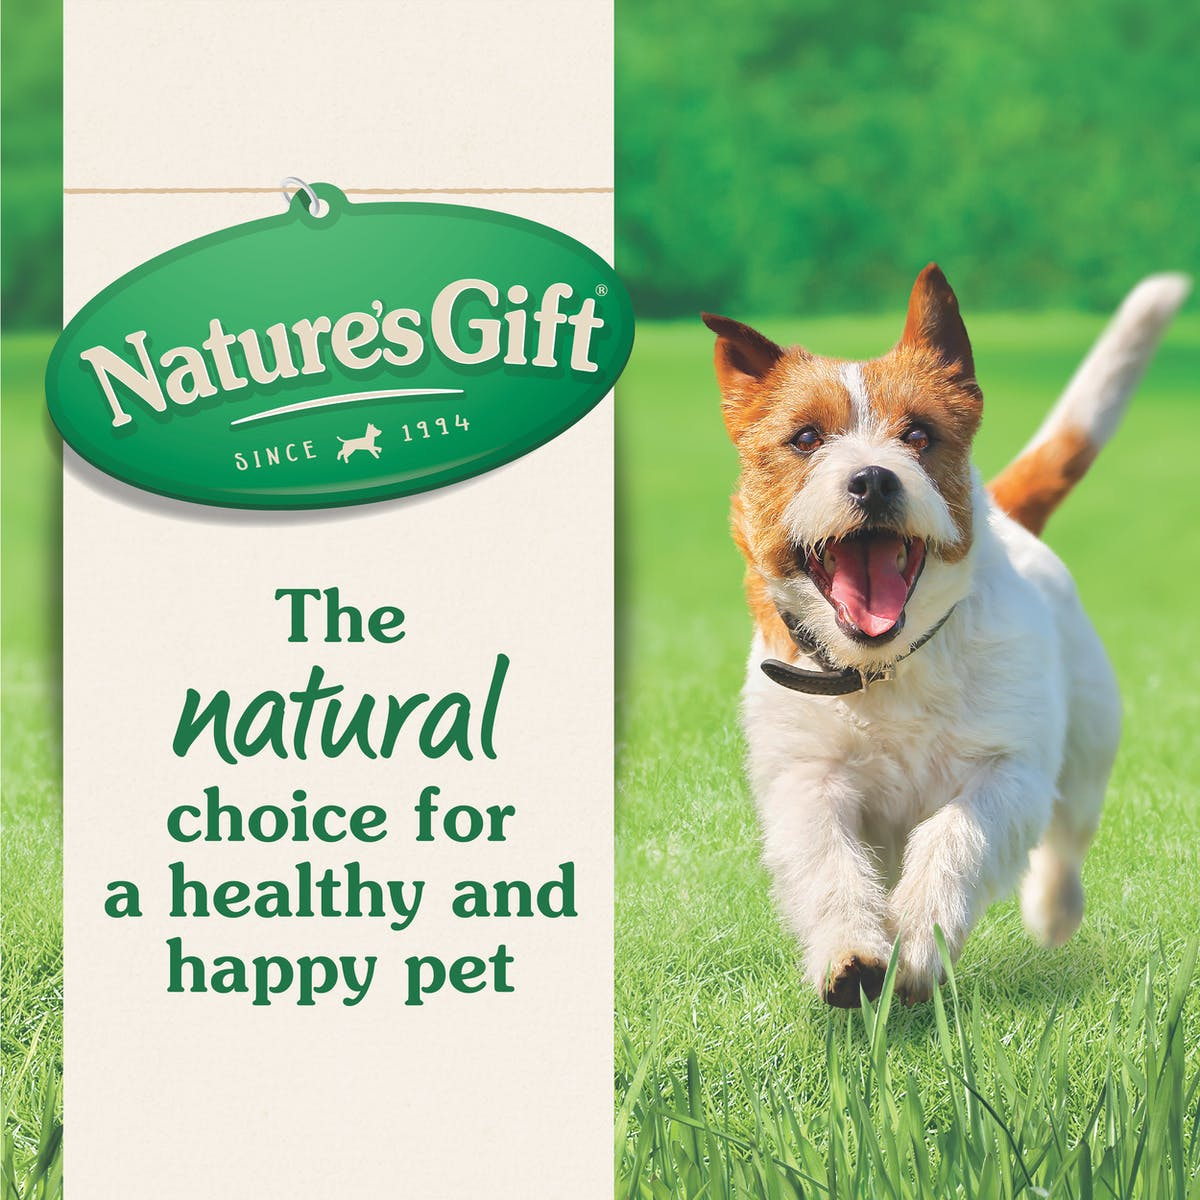 Nature's Gift | Kangaroo in Gravy | Wet dog food | Right of pack